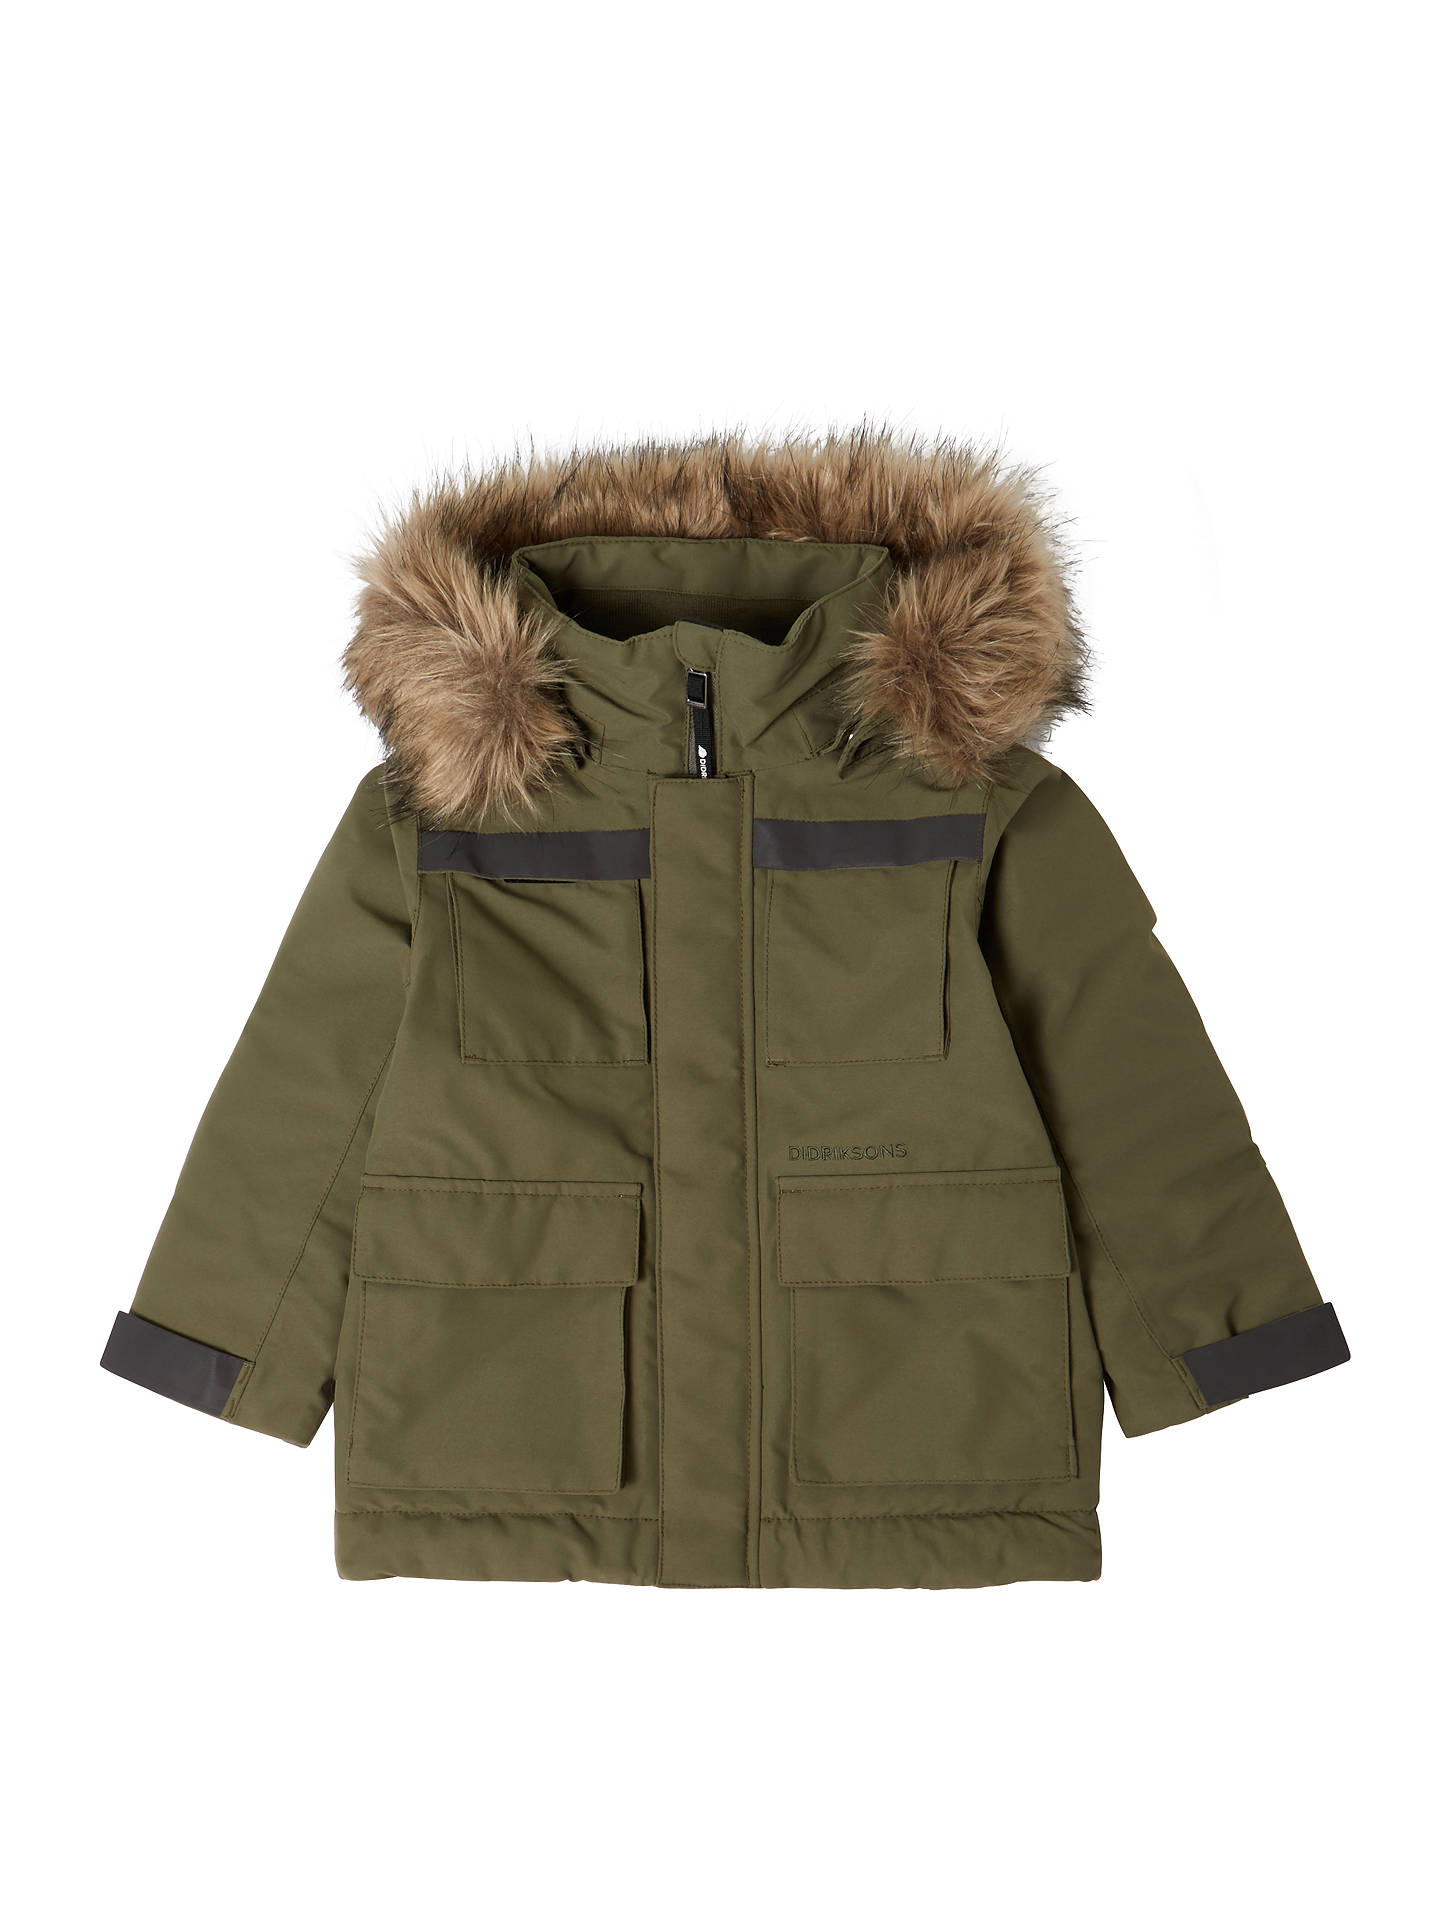 e70e1230 Buy Didriksons Boys' Norden Parka Jacket, Green, 2 years Online at  johnlewis.